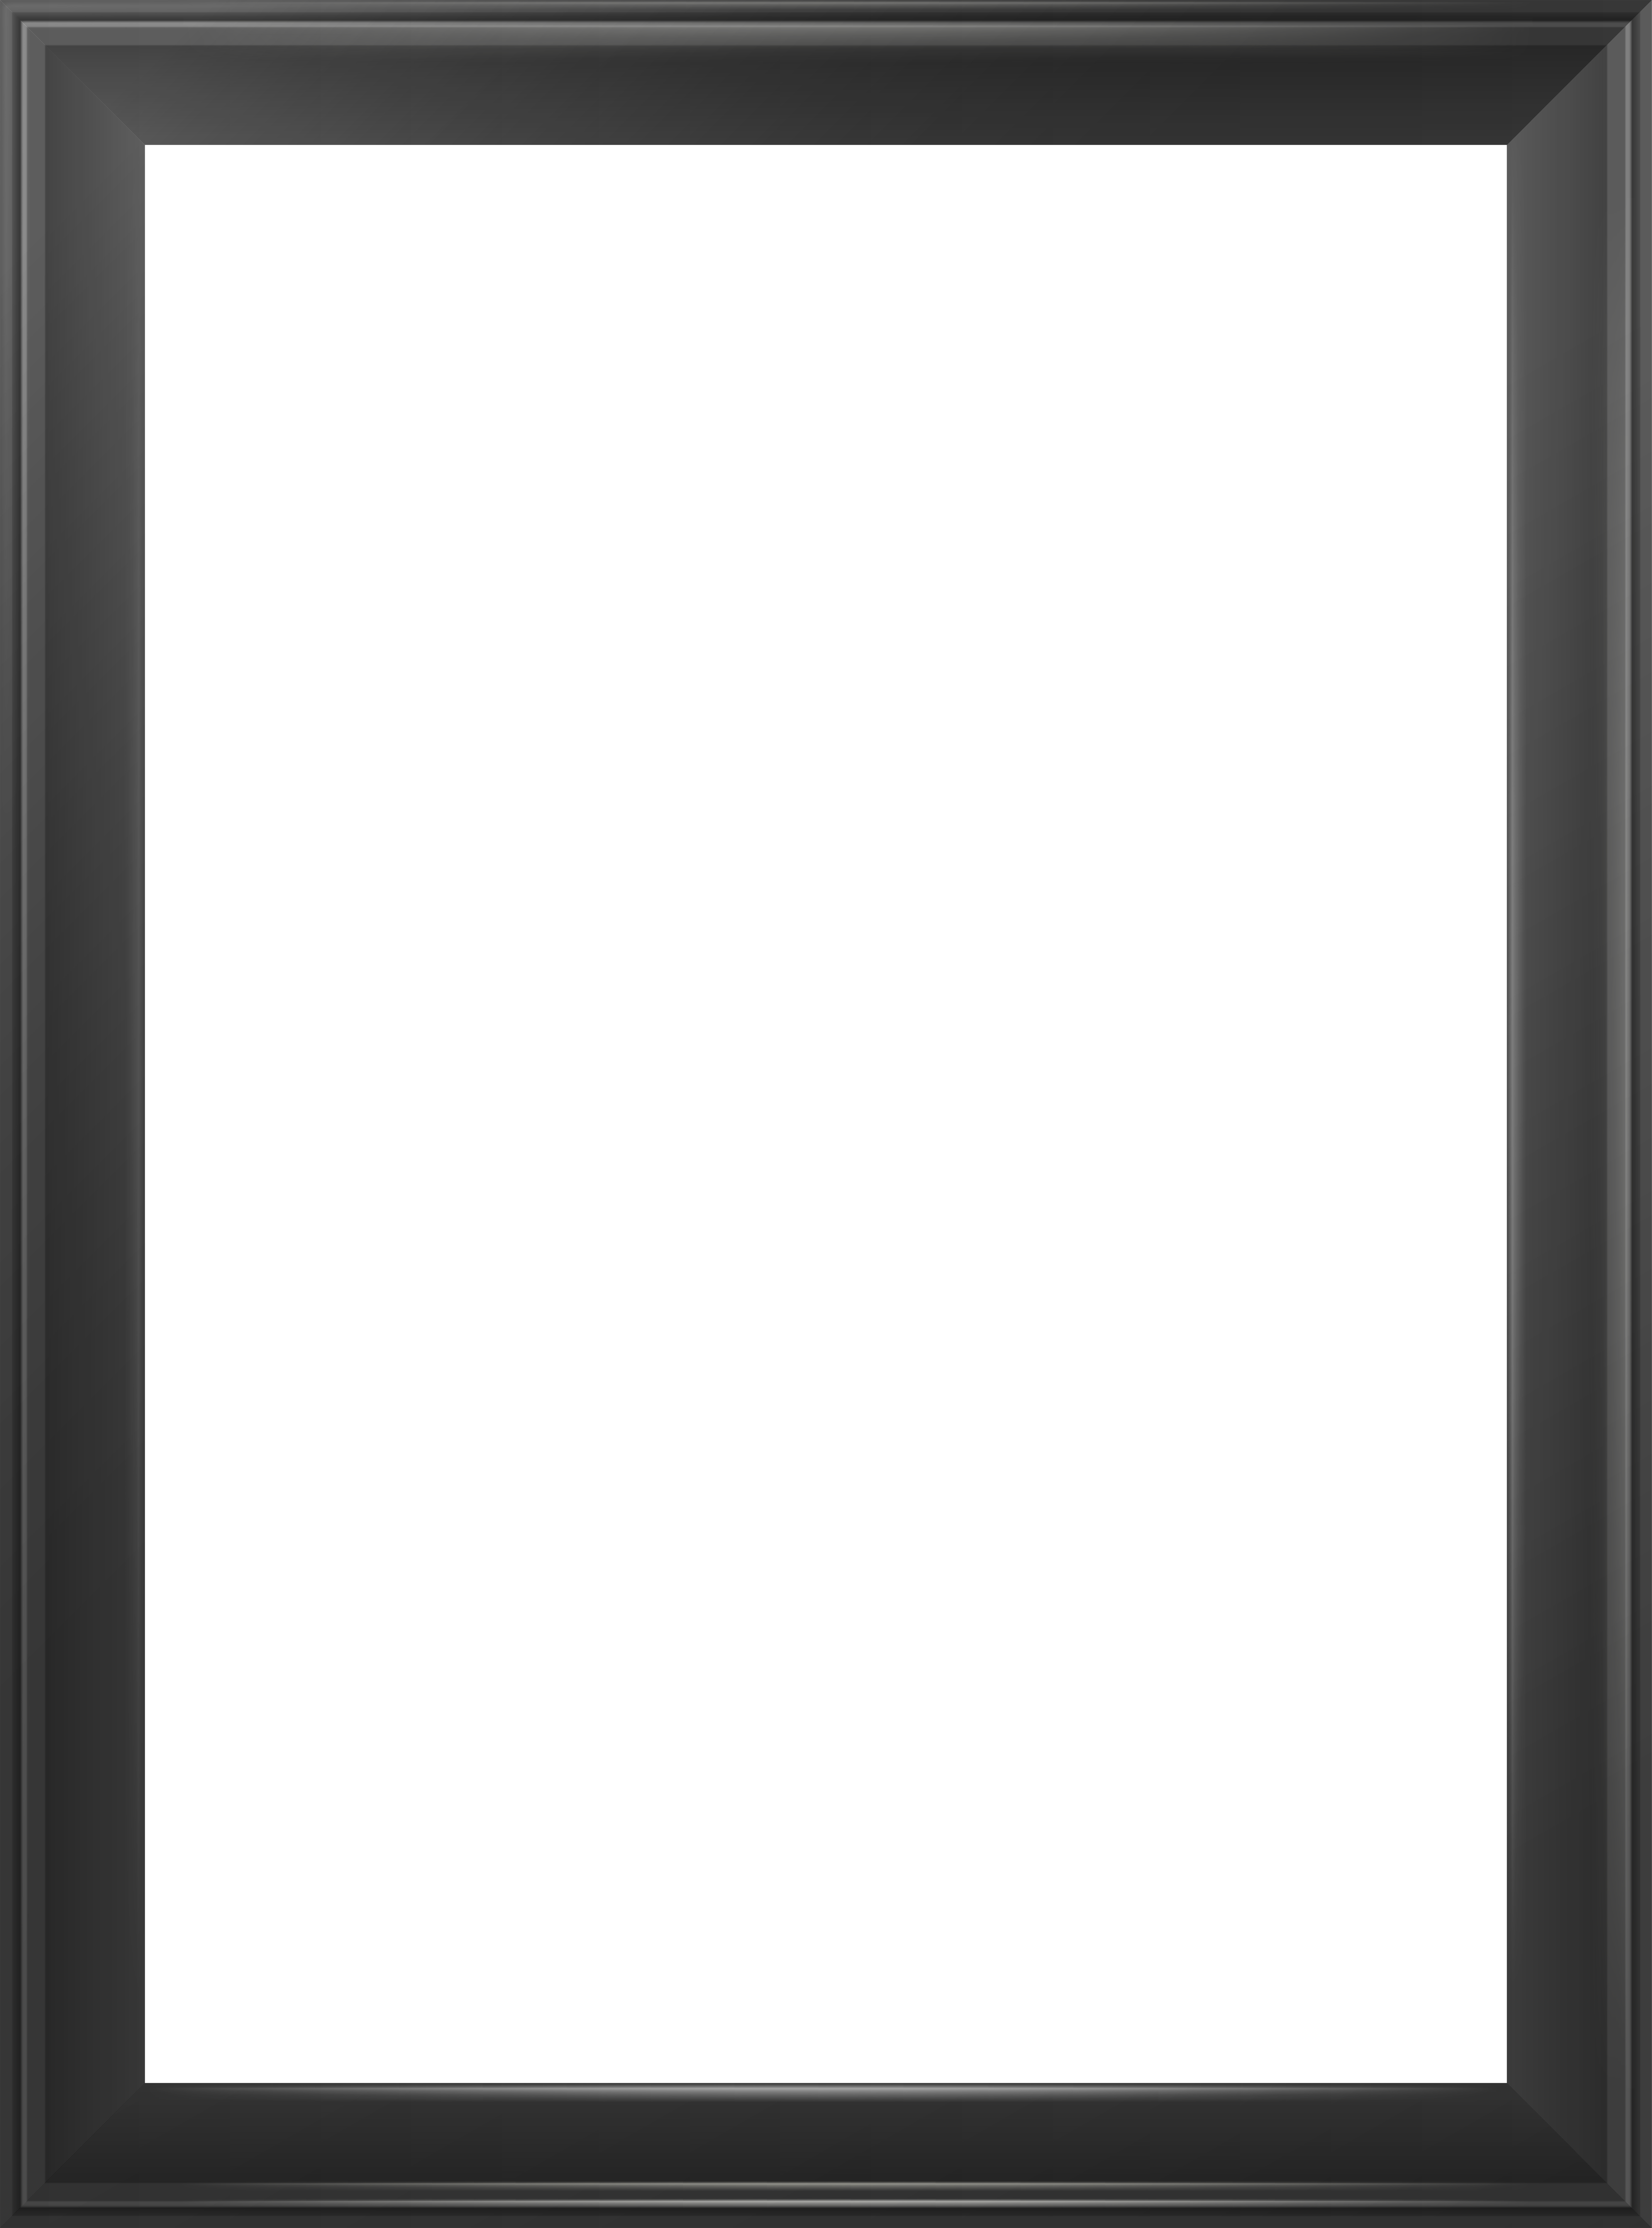 Png picture frame. Transparent classic black image